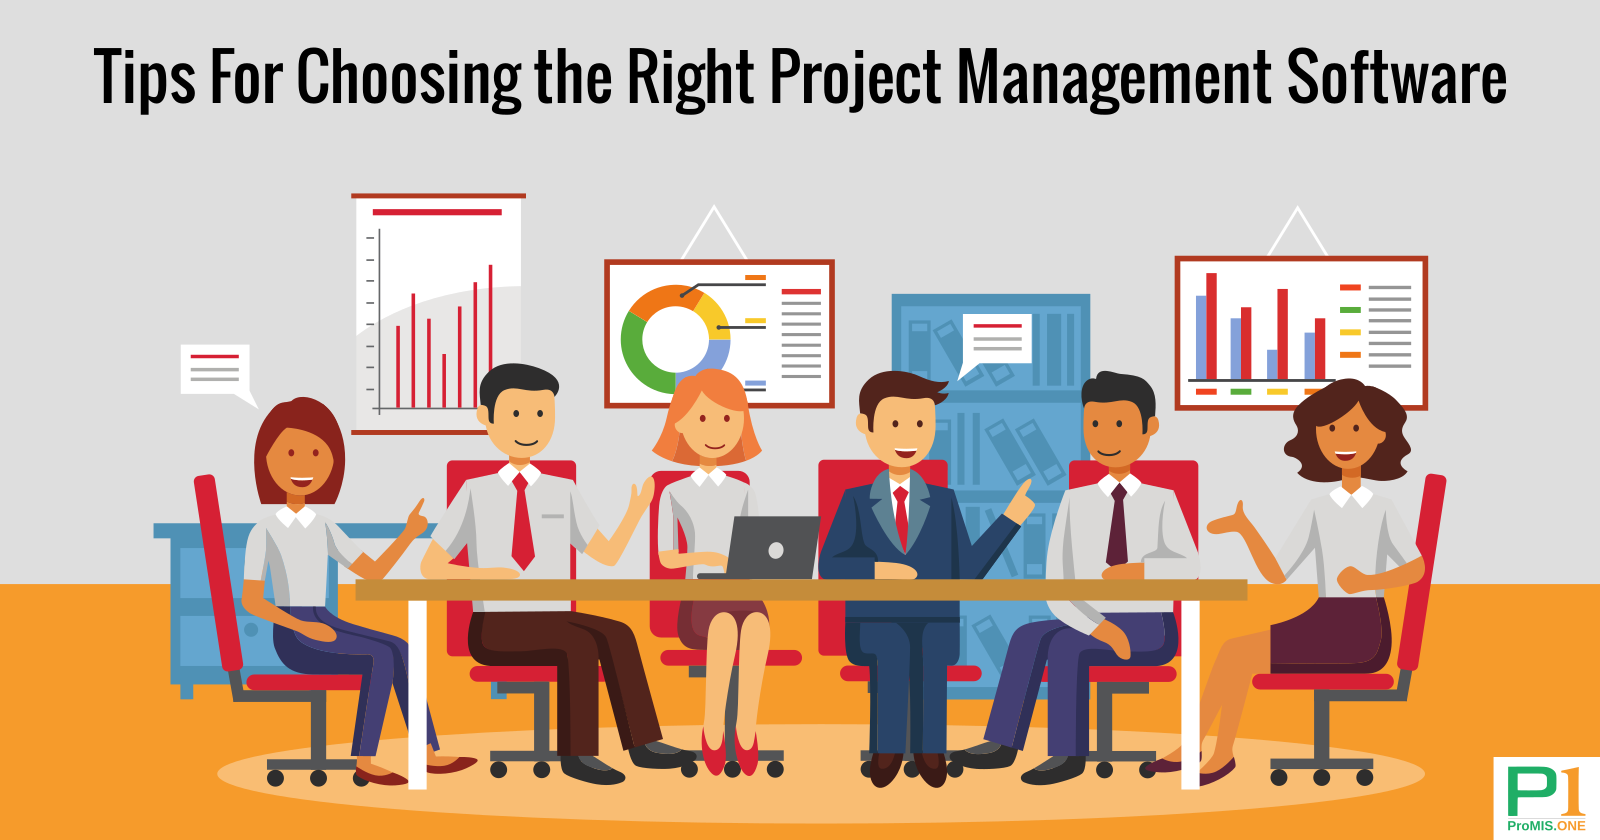 Tips For Choosing the Right Project Management Software